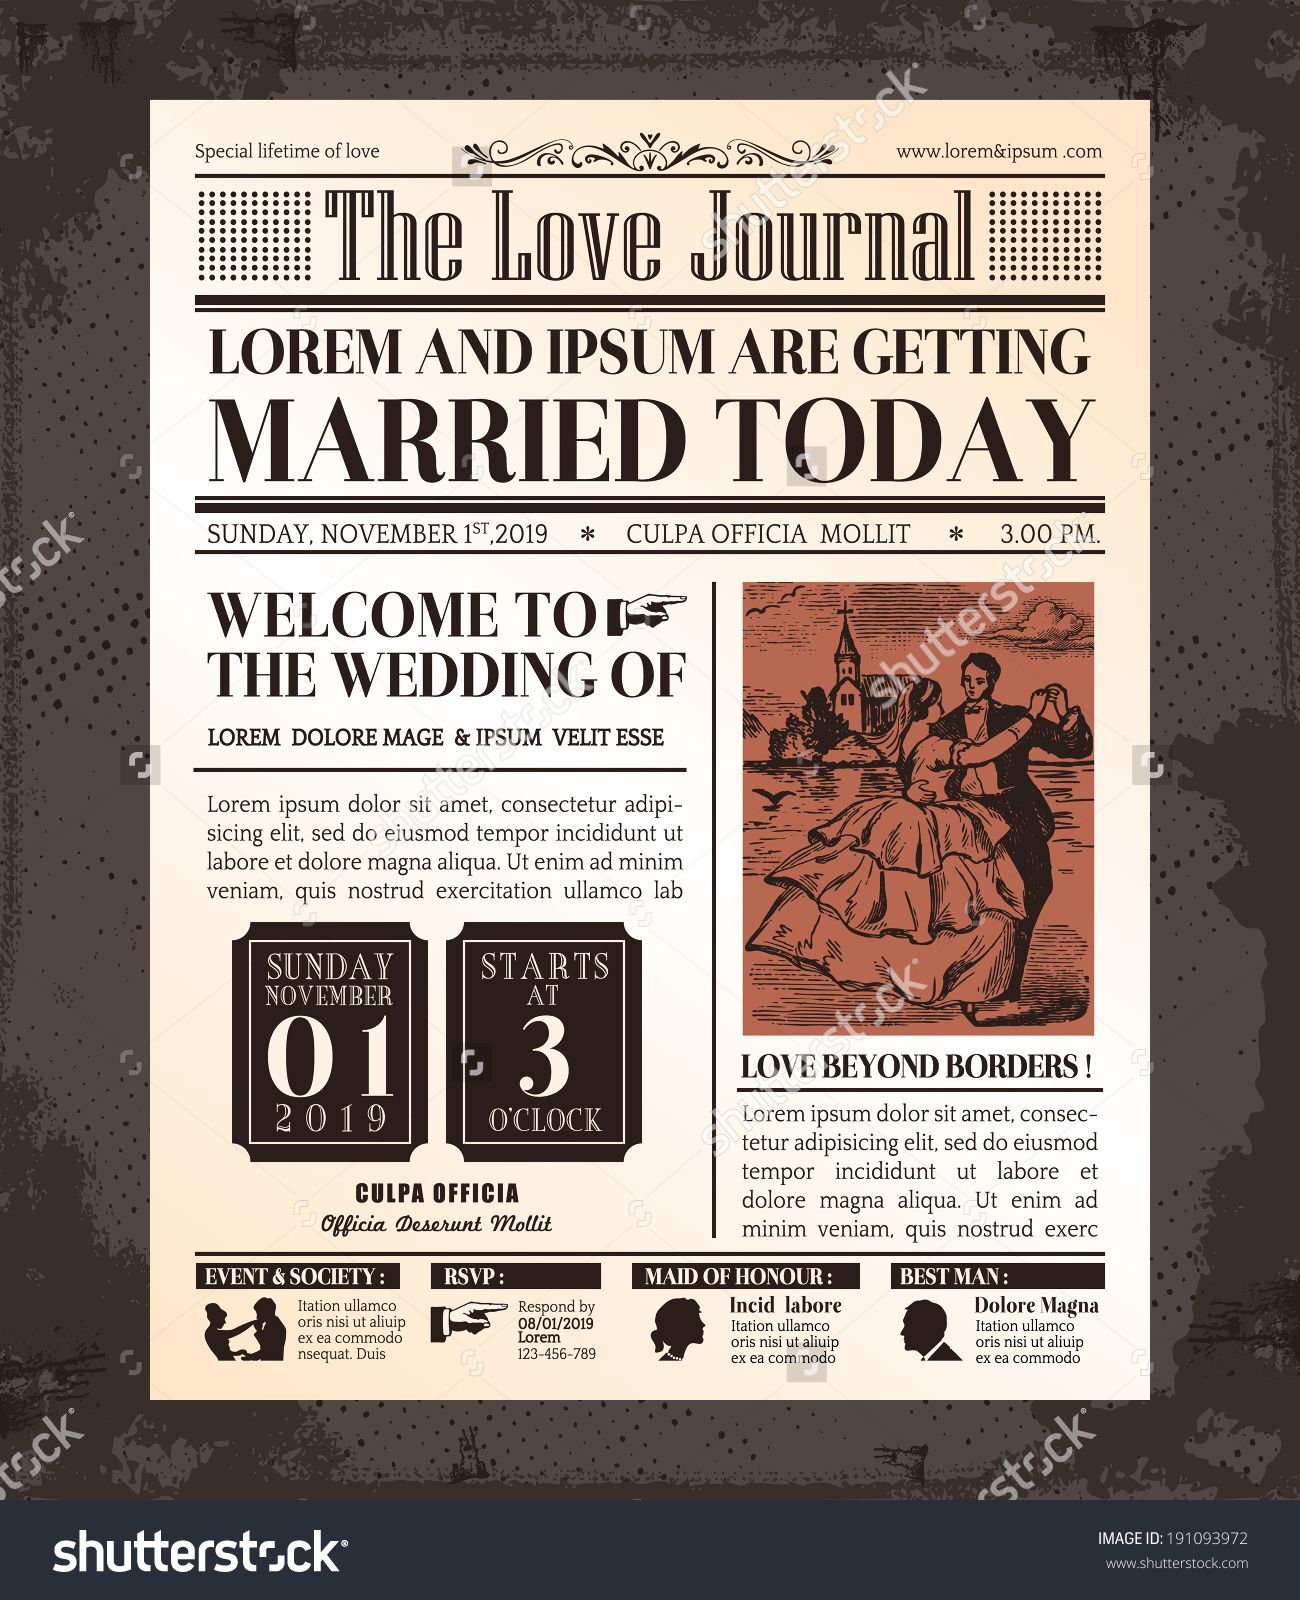 Httpimageutterstockzstock vector vintage newspaper stock vector of vintage newspaper wedding invitation card design vector art by kraphix from the collection istock get affordable vector art at thinkstock stopboris Image collections